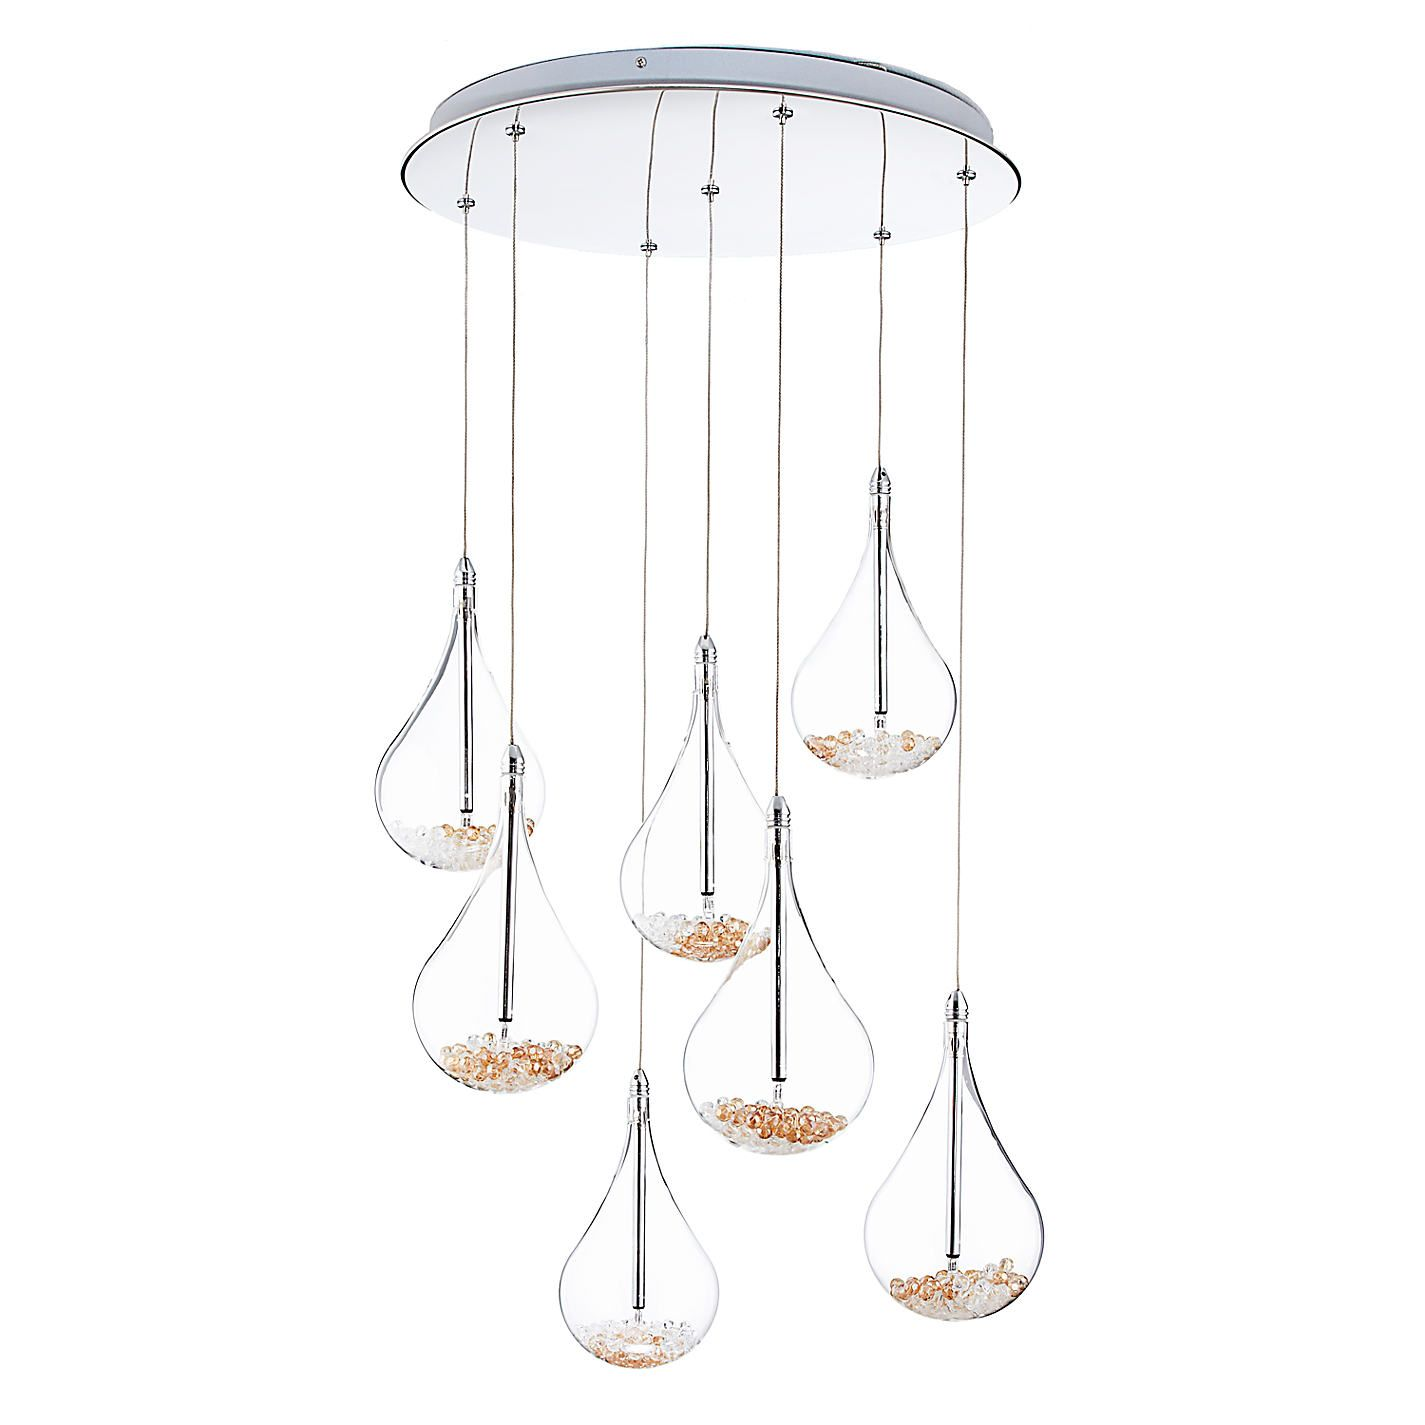 Buy john lewis sebastian 7 light drop ceiling light john lewis buy john lewis sebastian 7 light drop ceiling light john lewis aloadofball Images